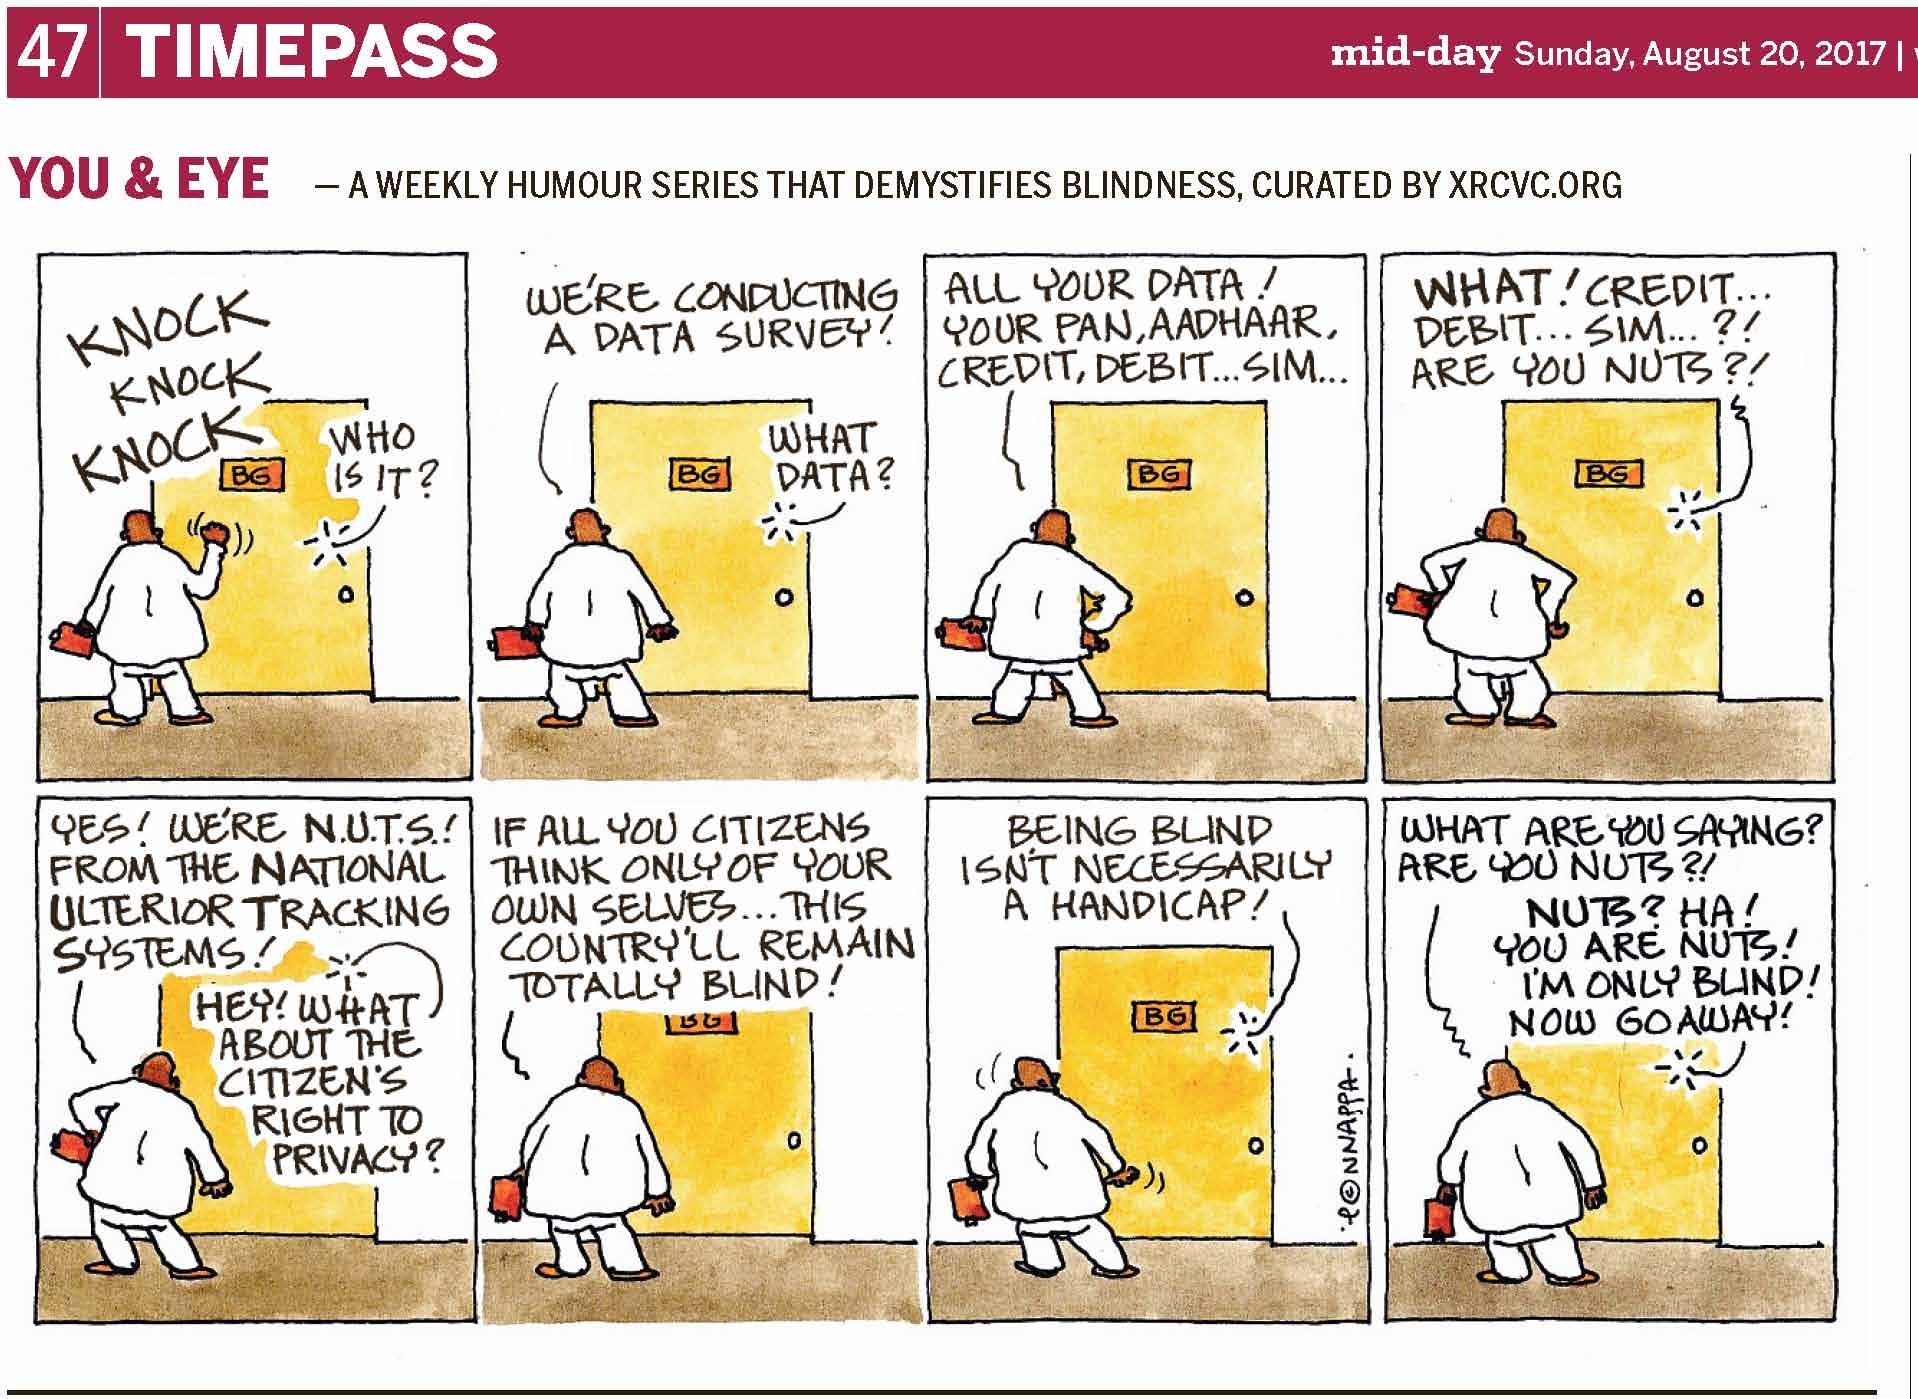 (top-left) 47 | TIMEPASS (top-right) mid-day Sunday, August 20, 2017 | YOU & EYE – A WEEKLY HUMOUR SERIES THAT DEMYSTIFIES BLINDNESS, CURATED BY XRCVC.ORG Image description: A cartoon strip with 8 frames… In each frame, there is a yellow door with a name plate – BG – on it. A line supposedly from behind the door appears to be BG's voice. Frame 1: (The words KNOCK KNOCK KNOCK appear above a bald man in white, who is seen from the back, holding a writing pad in his left hand, as he knocks on a door with his right hand. Short curved lines near the man's right hand represent movement.) BG's voice (from behind the door): Who is it? Frame 2: (The man in white is seen from the back with the writing pad in his left hand.) Man in white: We're conducting a data survey! BG's voice (from behind the door): What data? Frame 3: (The man in white seen from the back now rests his right hand on his hip.) Man in white: All your data! You PAN, Aadhaar, Credit, Debit… SIM… Frame 4: (The man in white now rests both his hands on his hips.) BG's voice (from behind the door): What! Credit… Debit… SIM…?! Are you nuts?! Frame 5: (The man in white with only his left hand on his hip now.) Man in white: Yes! We're N.U.T.S.! From the National Ulterior Tracking Systems! BG's voice (from behind the door): Hey! What about the citizen's right to privacy? Frame 6: (The man in white is seen from the back with both his hands down on either side of him.) Man in white: If all you citizens think only of your own selves… this country'll remain totally blind! Frame 7: (The man in white is seen from the back. Short curved lines near the man's head and right hand represent movement.) BG's voice (from behind the door): Being blind isn't necessarily a handicap! Frame 8: (The man in white is seen from the back with both his hands down on either side of him.) Man in white: What are you saying? Are you nuts? BG's voice (from behind the door): NUTS? Ha! You are NUTS! I'm only blind! Now go away! (Signed Ponnappa, in Frame 7)